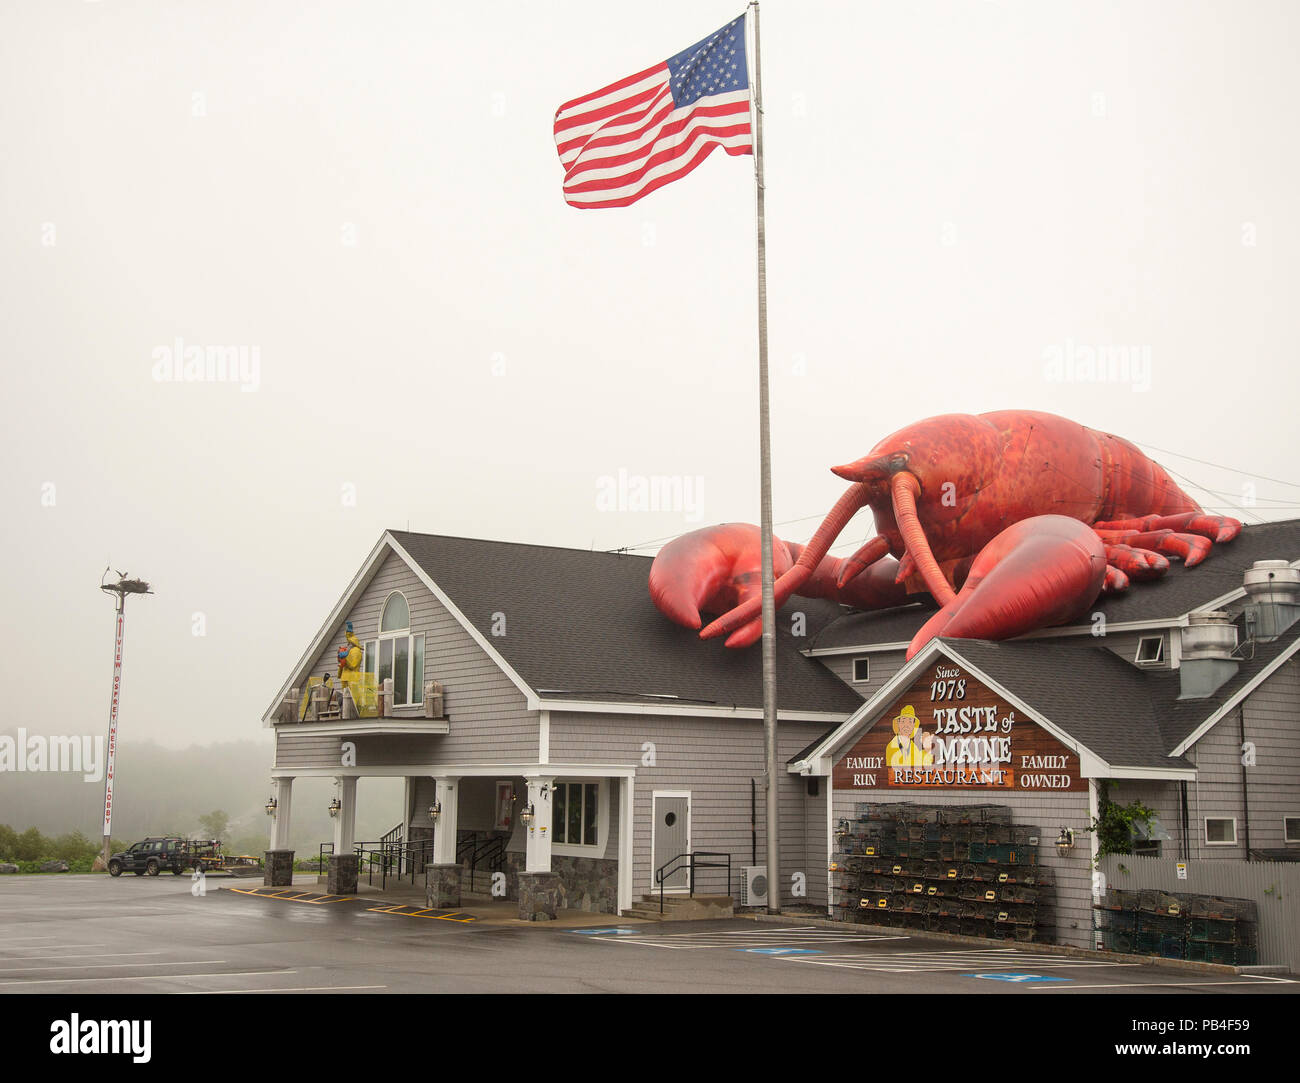 Seafood restaurant with lobster on top in Woolwich, Maine - Stock Image